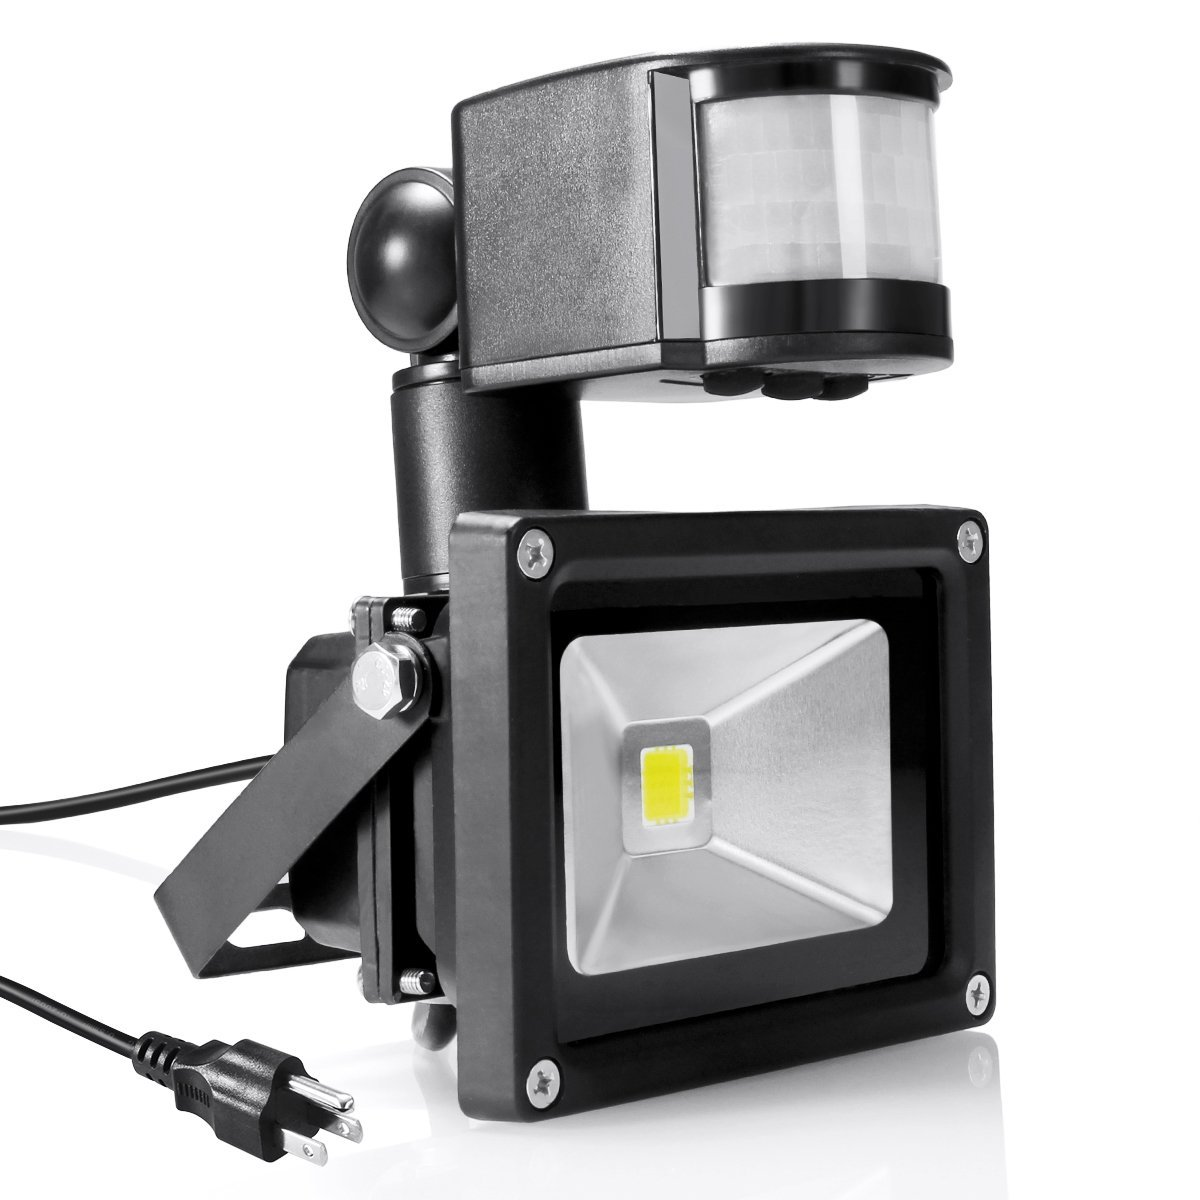 Warmoon DEFIANT Motion Sensor Waterproof Flood Light